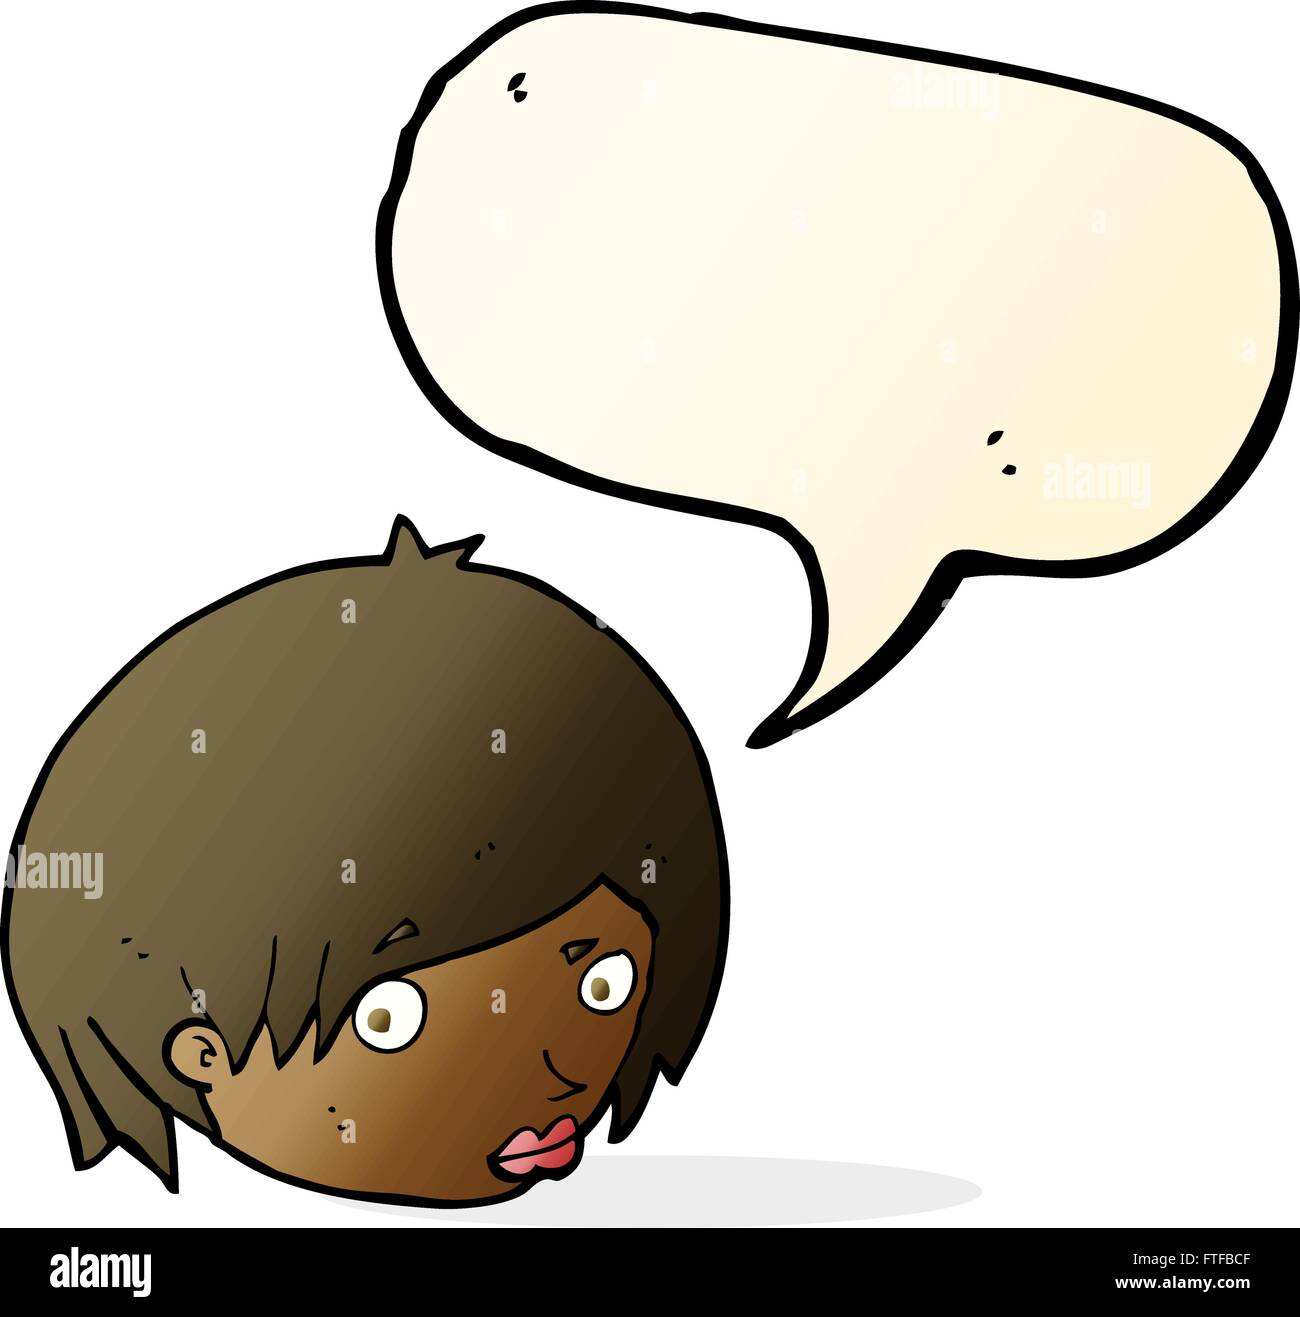 Cartoon Female Face With Raised Eyebrow With Speech Bubble Stock